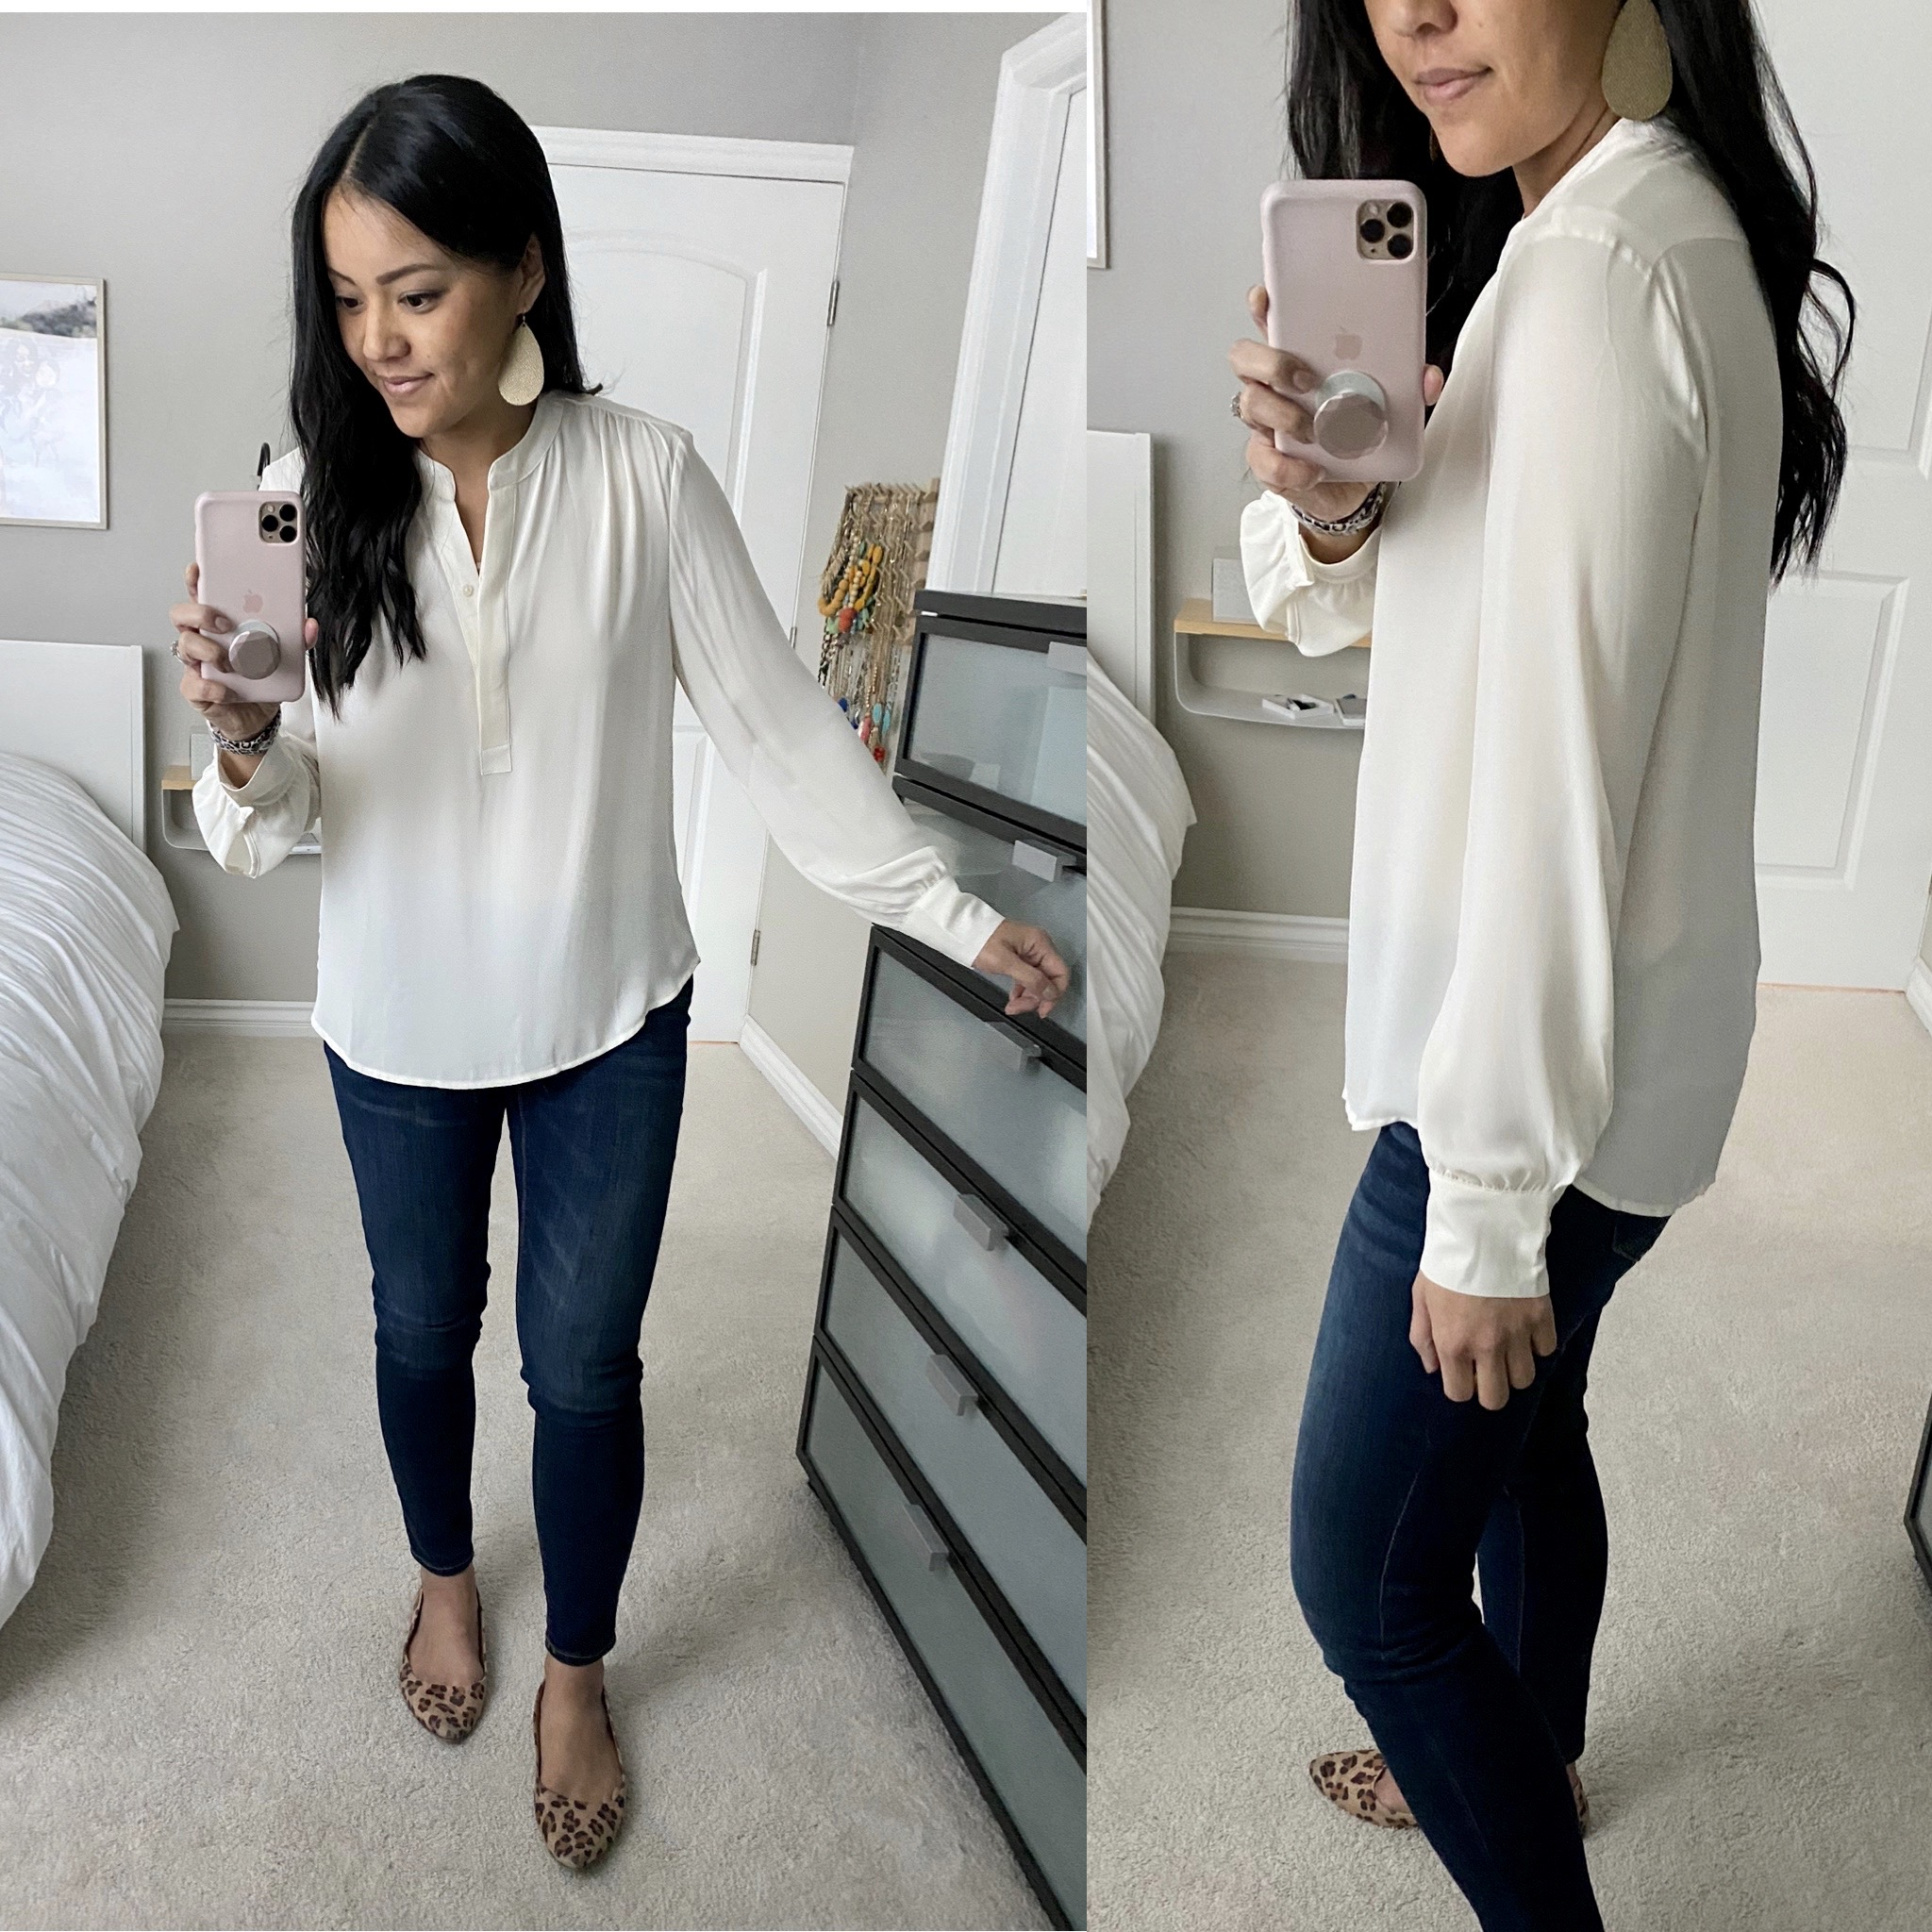 Business Casual Jeans Outfit: cream blouse + maternity skinny jeans + leopard flats + gold leather earrings